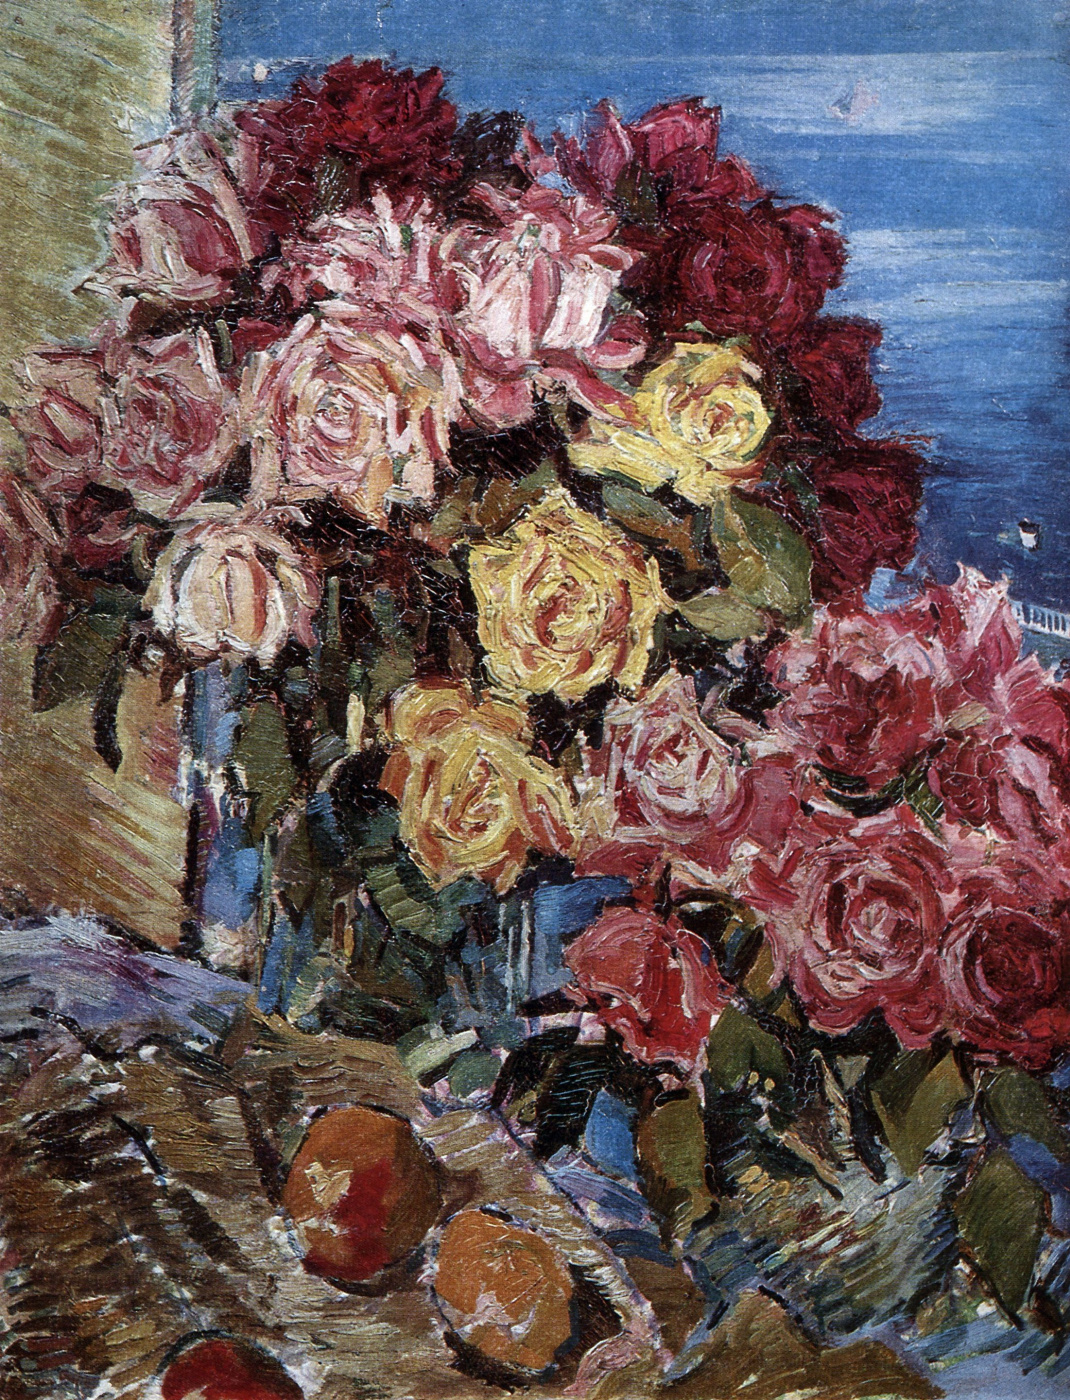 Konstantin Korovin. Roses against the sea